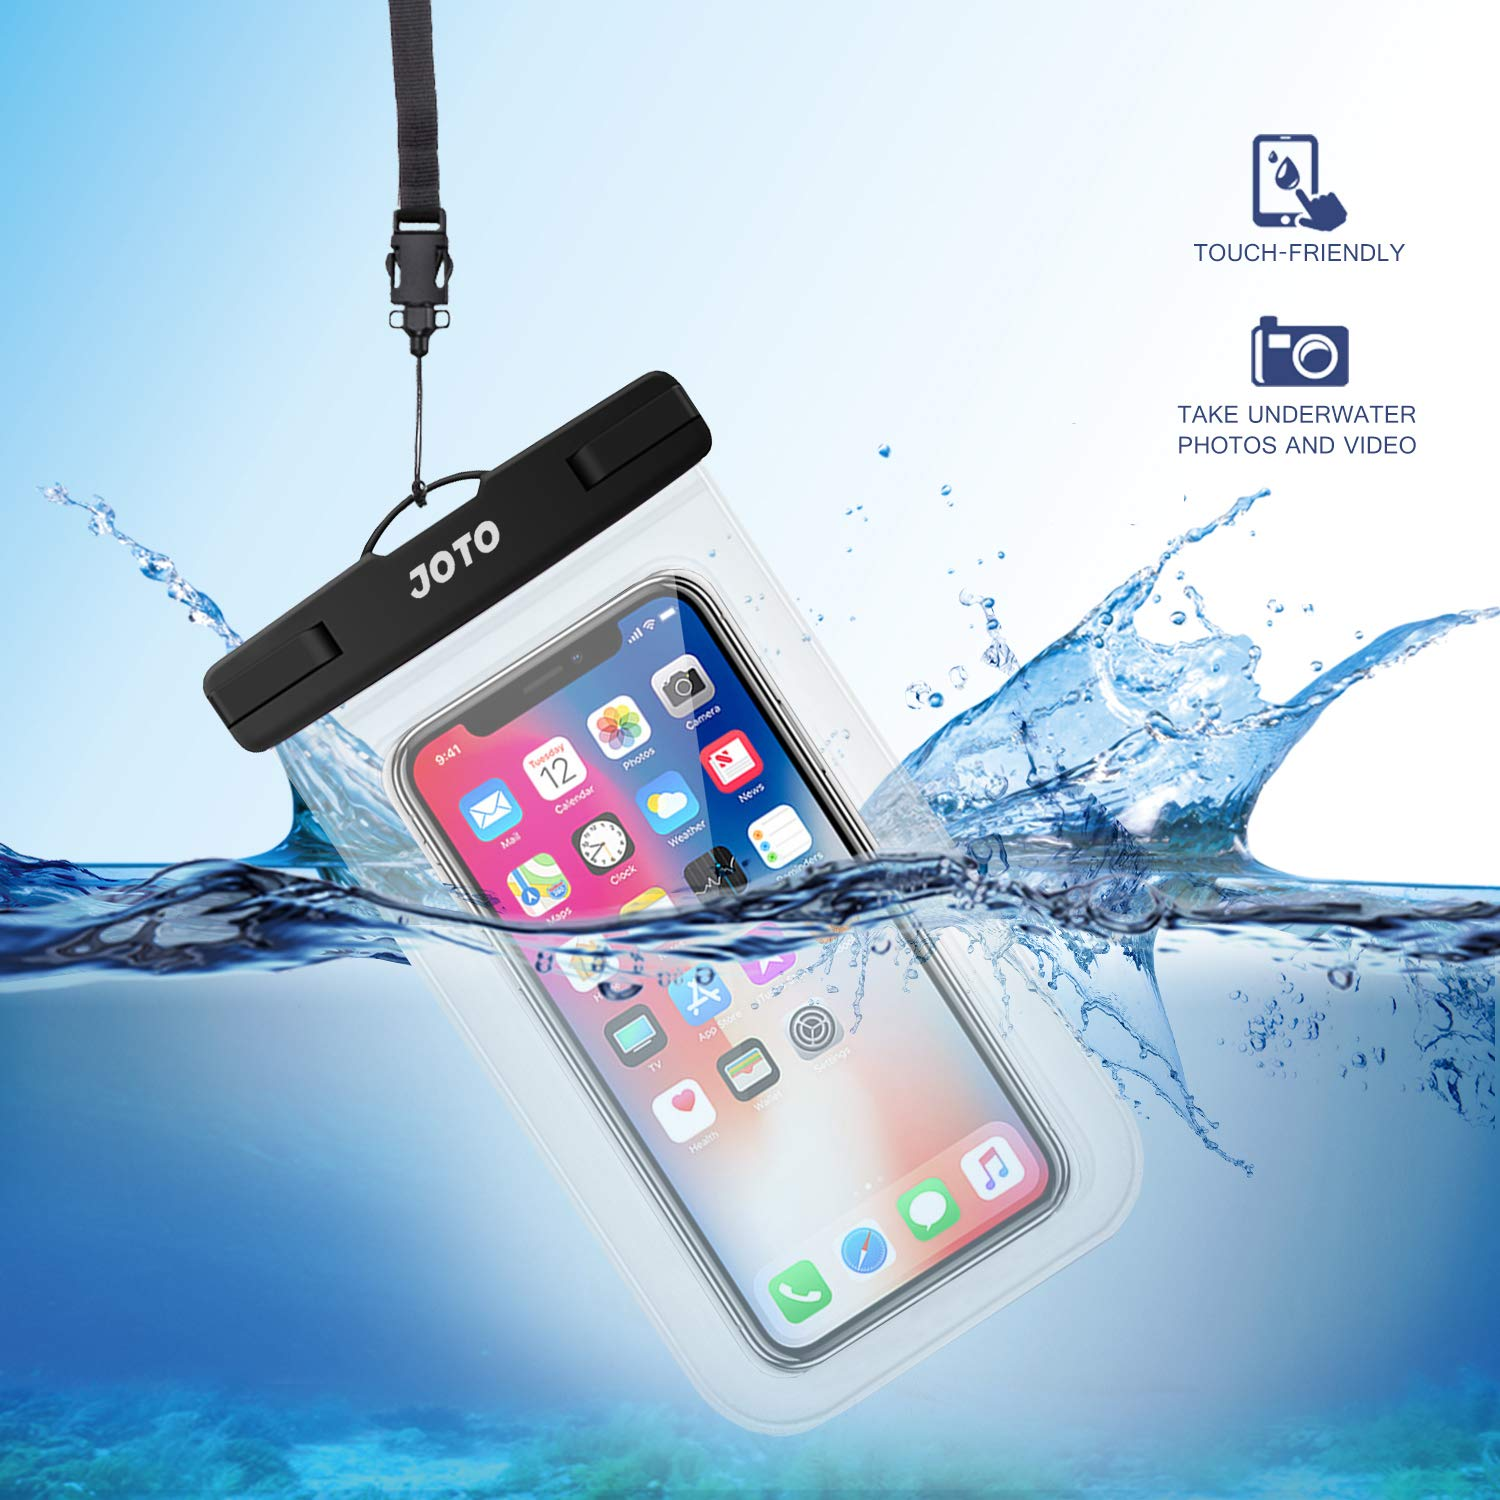 Amazon.com: JOTO Universal Waterproof Case, IPX8 Cellphone ...